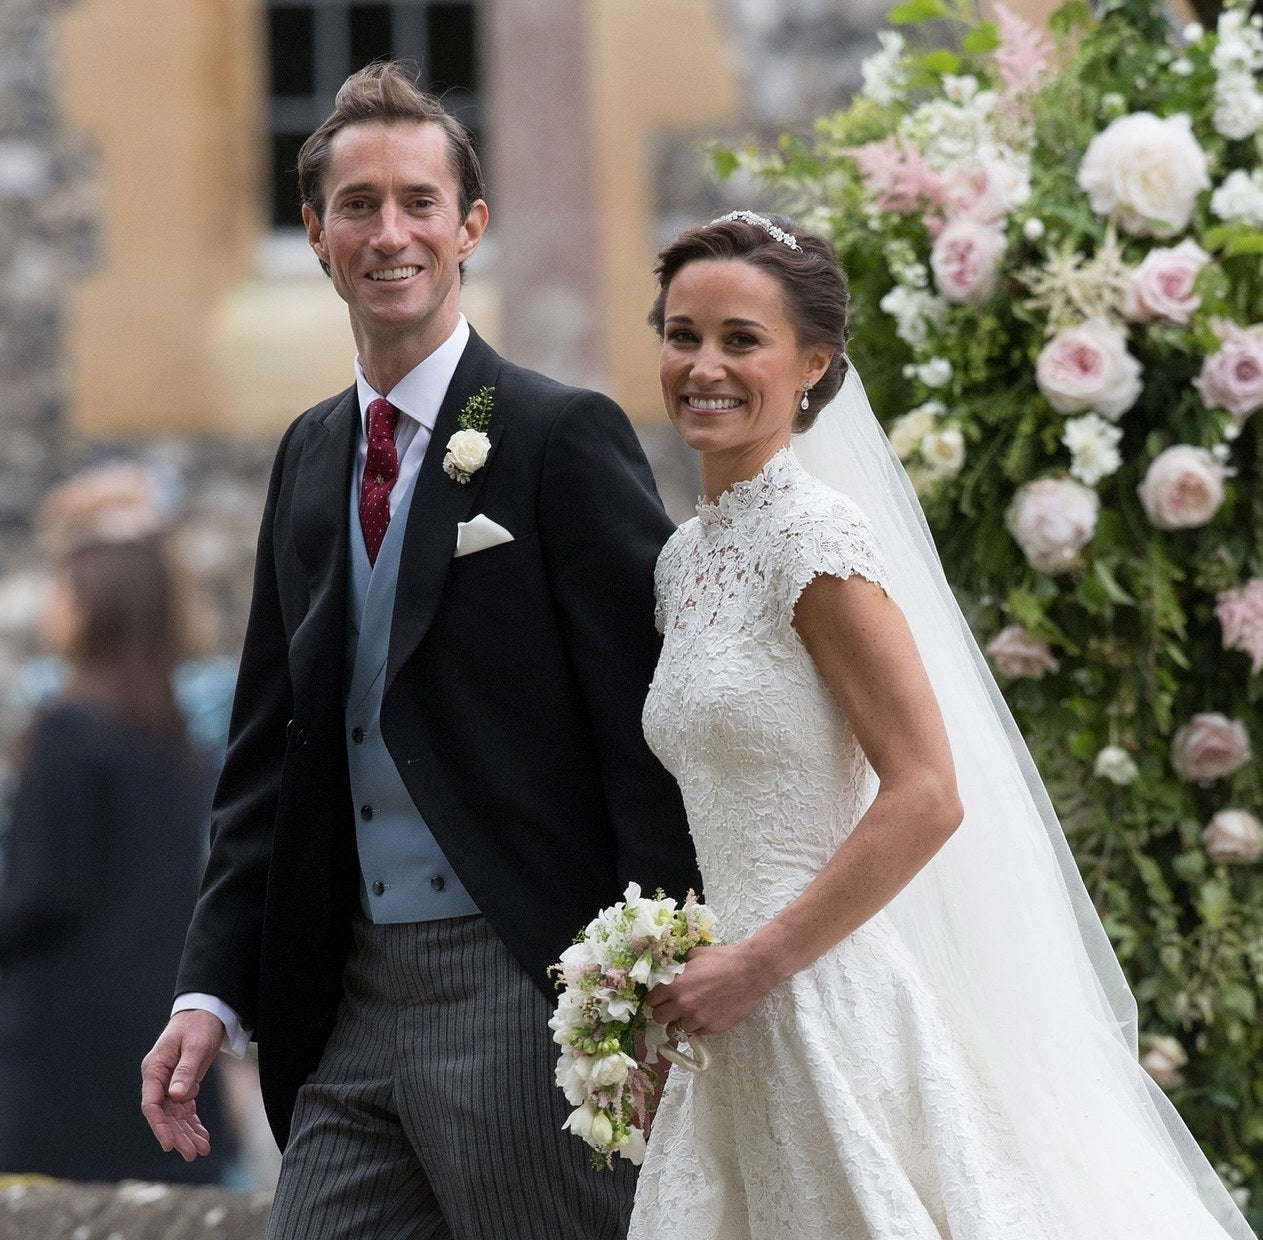 James Matthews and Pippa Middleton